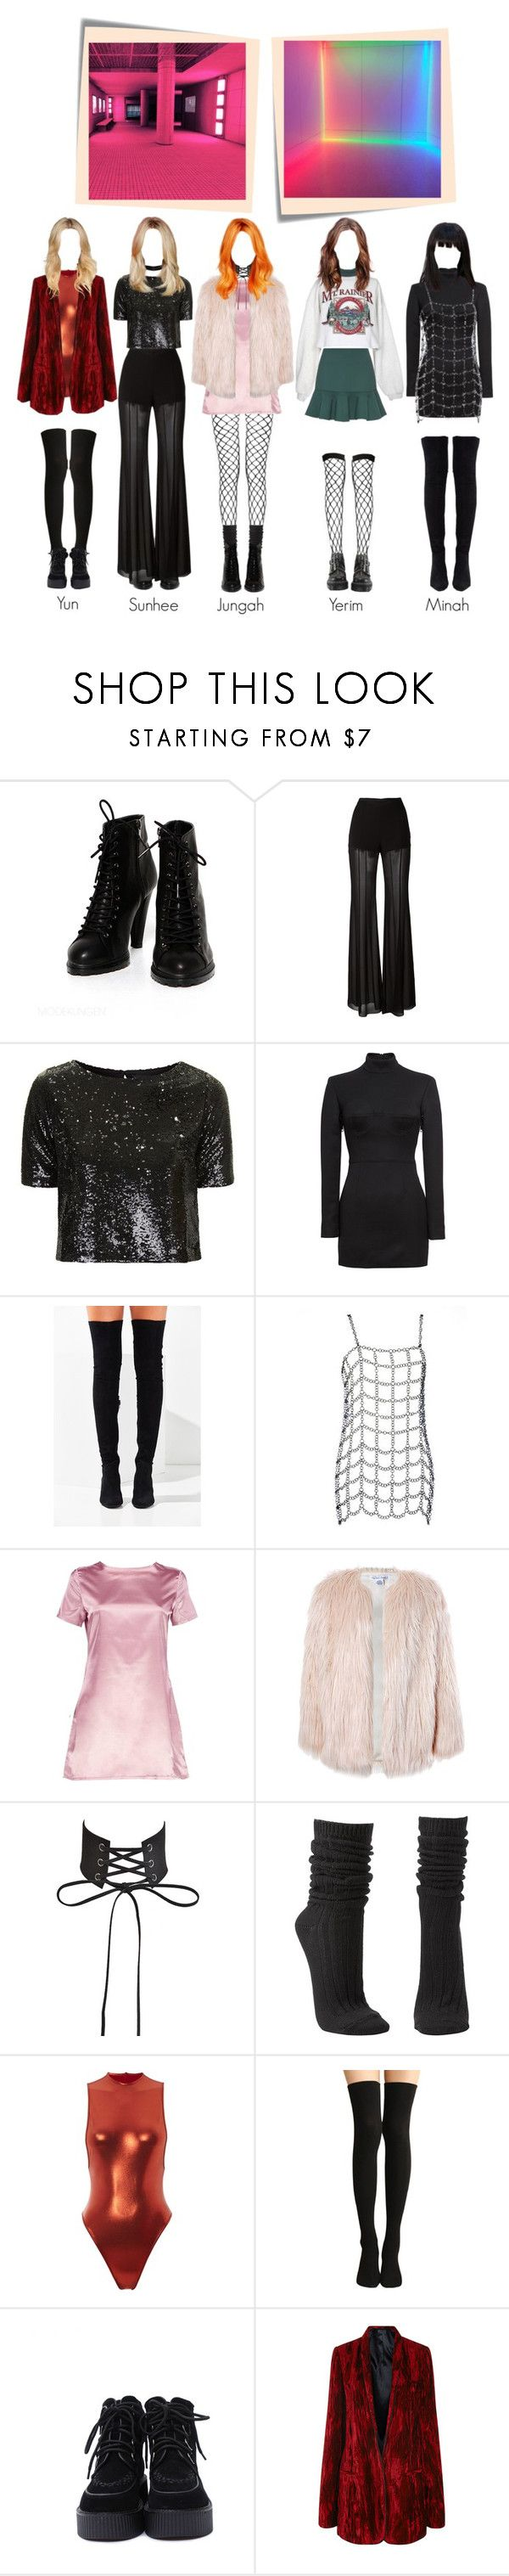 """SOLAR ( COMEBACK ) - I WANT YOU "" MV """" by solarofficial ❤ liked on Polyvore featuring Alberta Ferretti, Topshop, Vetements, Jeffrey Campbell, Boohoo, Sans Souci, Charlotte Russe, AQ/AQ, Haider Ackermann and Victoria, Victoria Beckham"